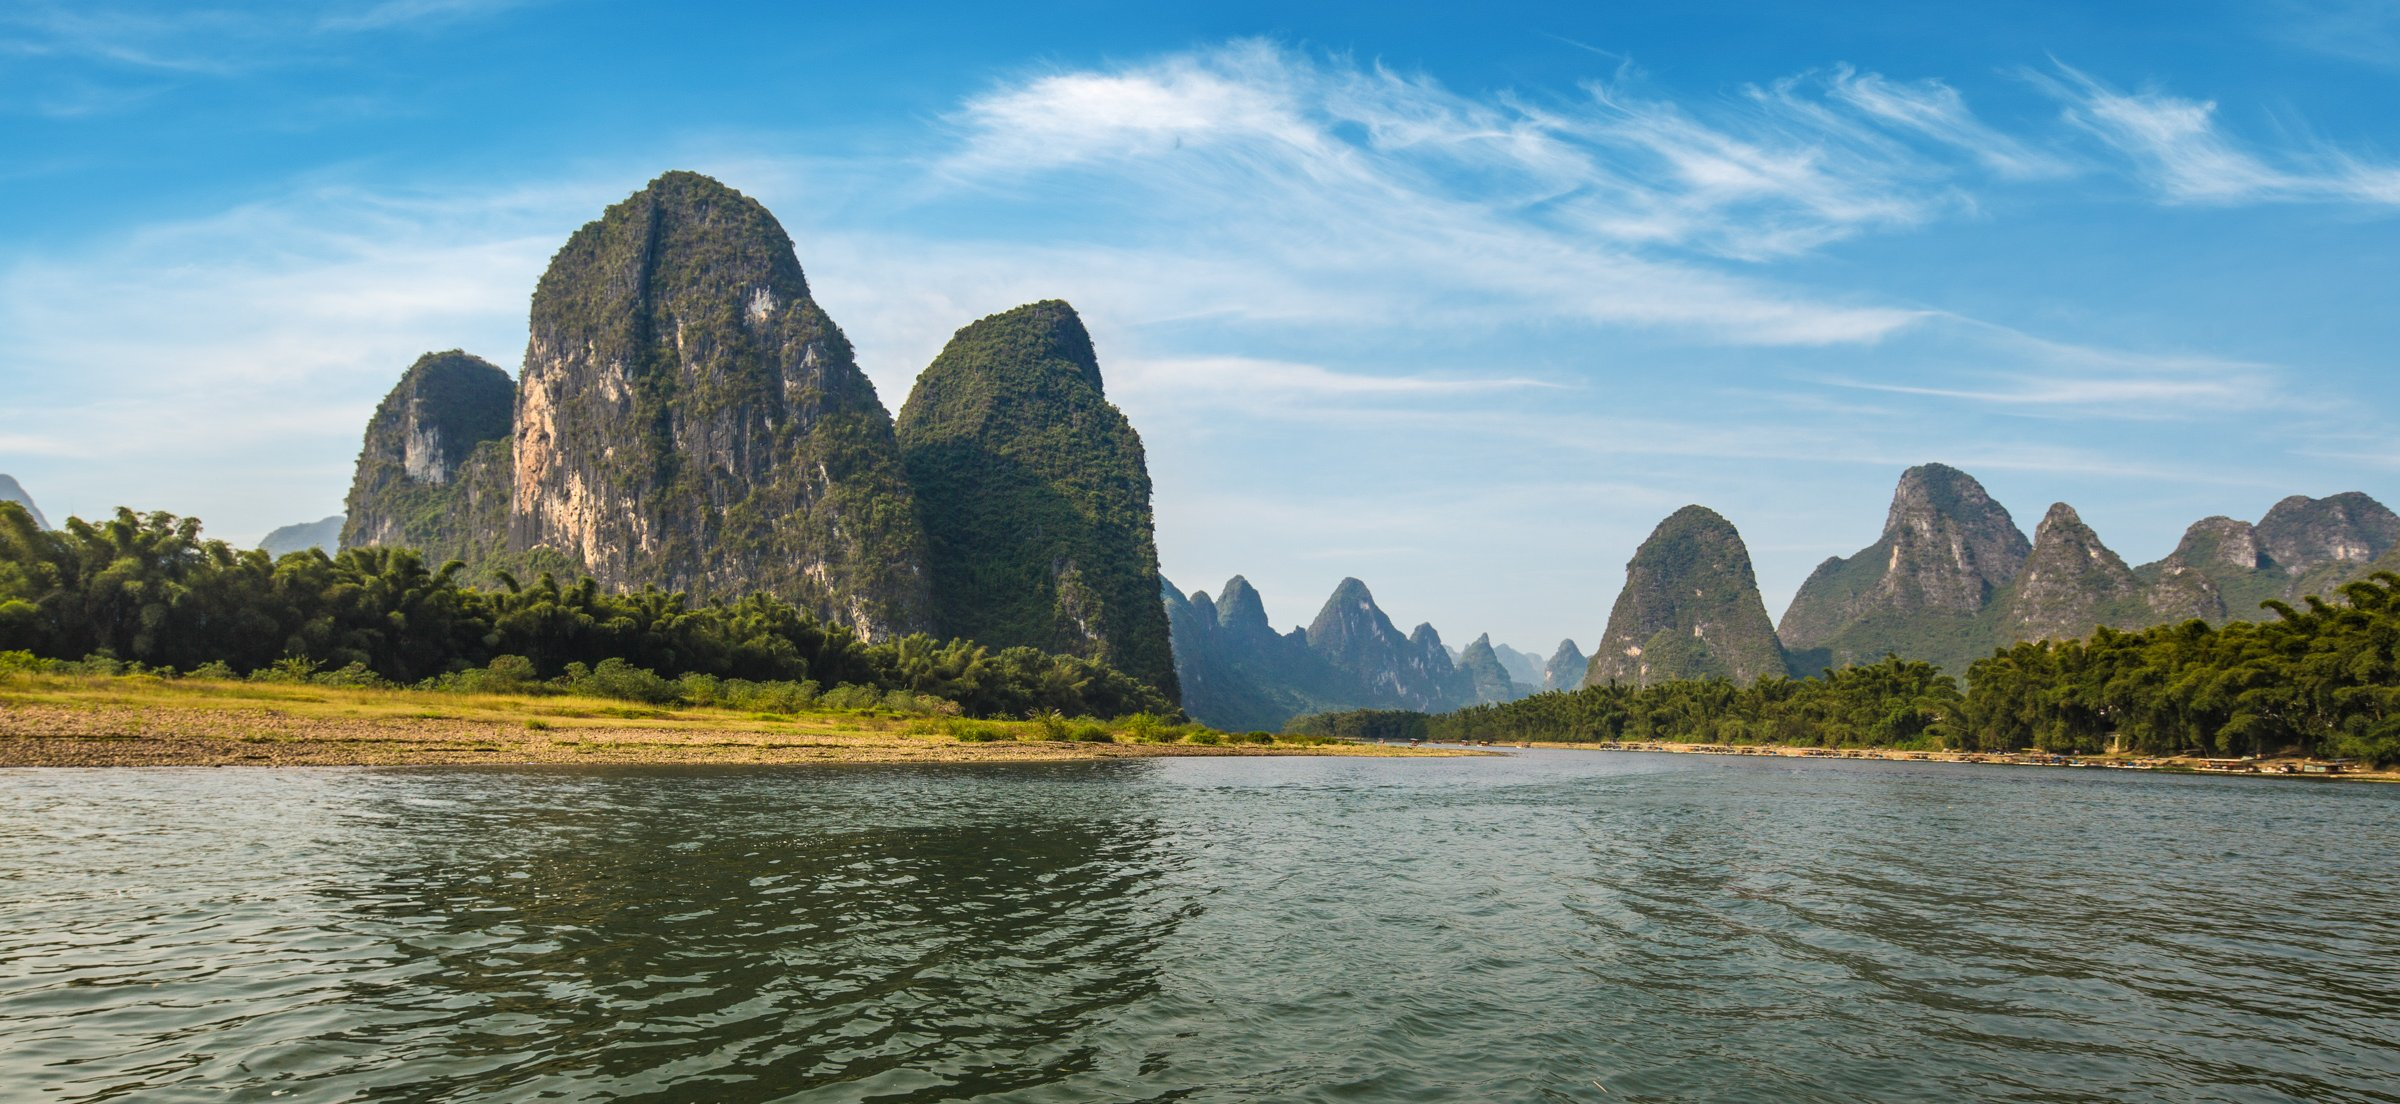 li-river-guilin-yangshuo-cruise